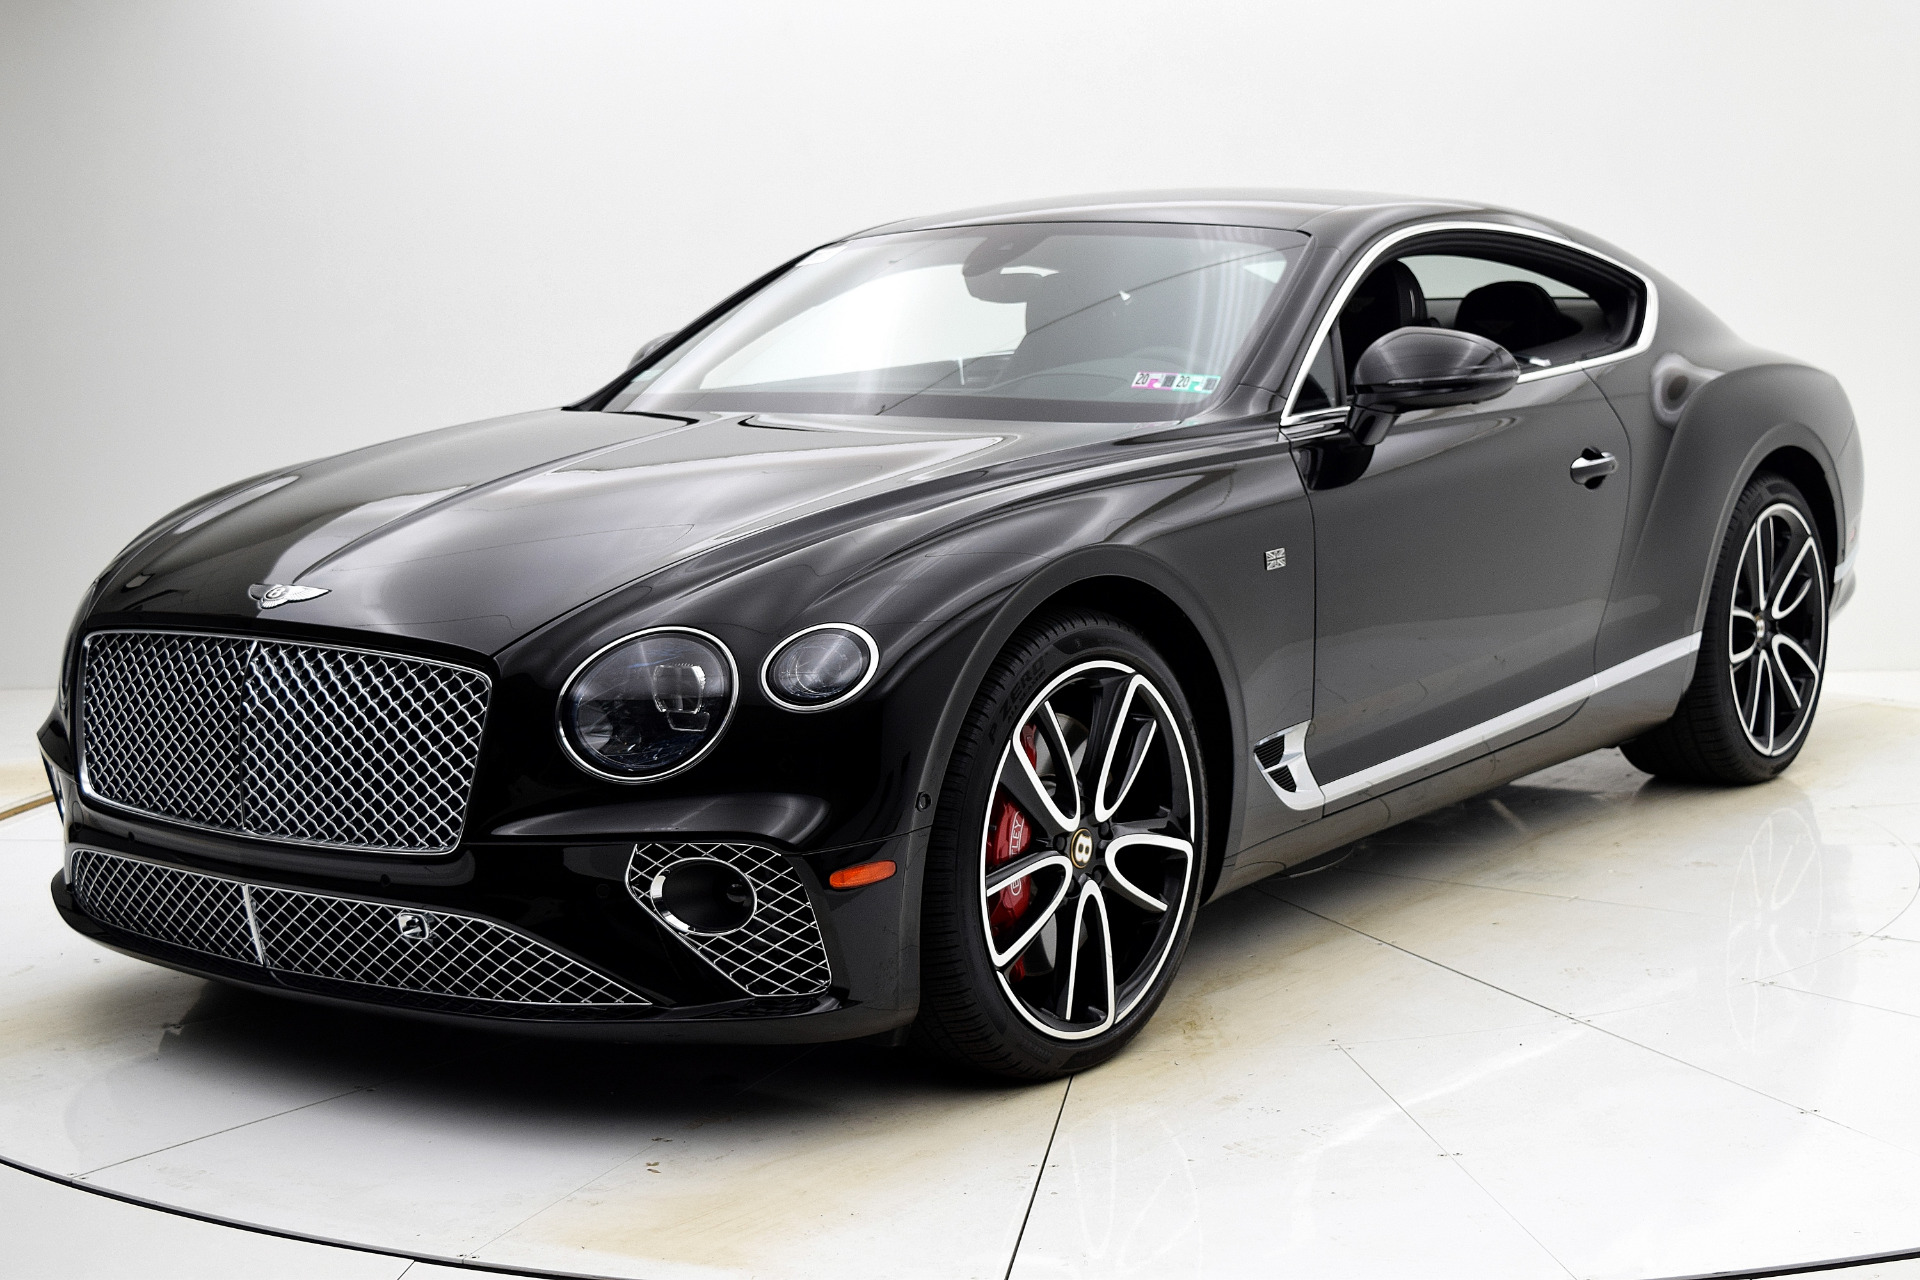 Used 2020 Bentley Continental GT First Edition for sale Sold at F.C. Kerbeck Aston Martin in Palmyra NJ 08065 2